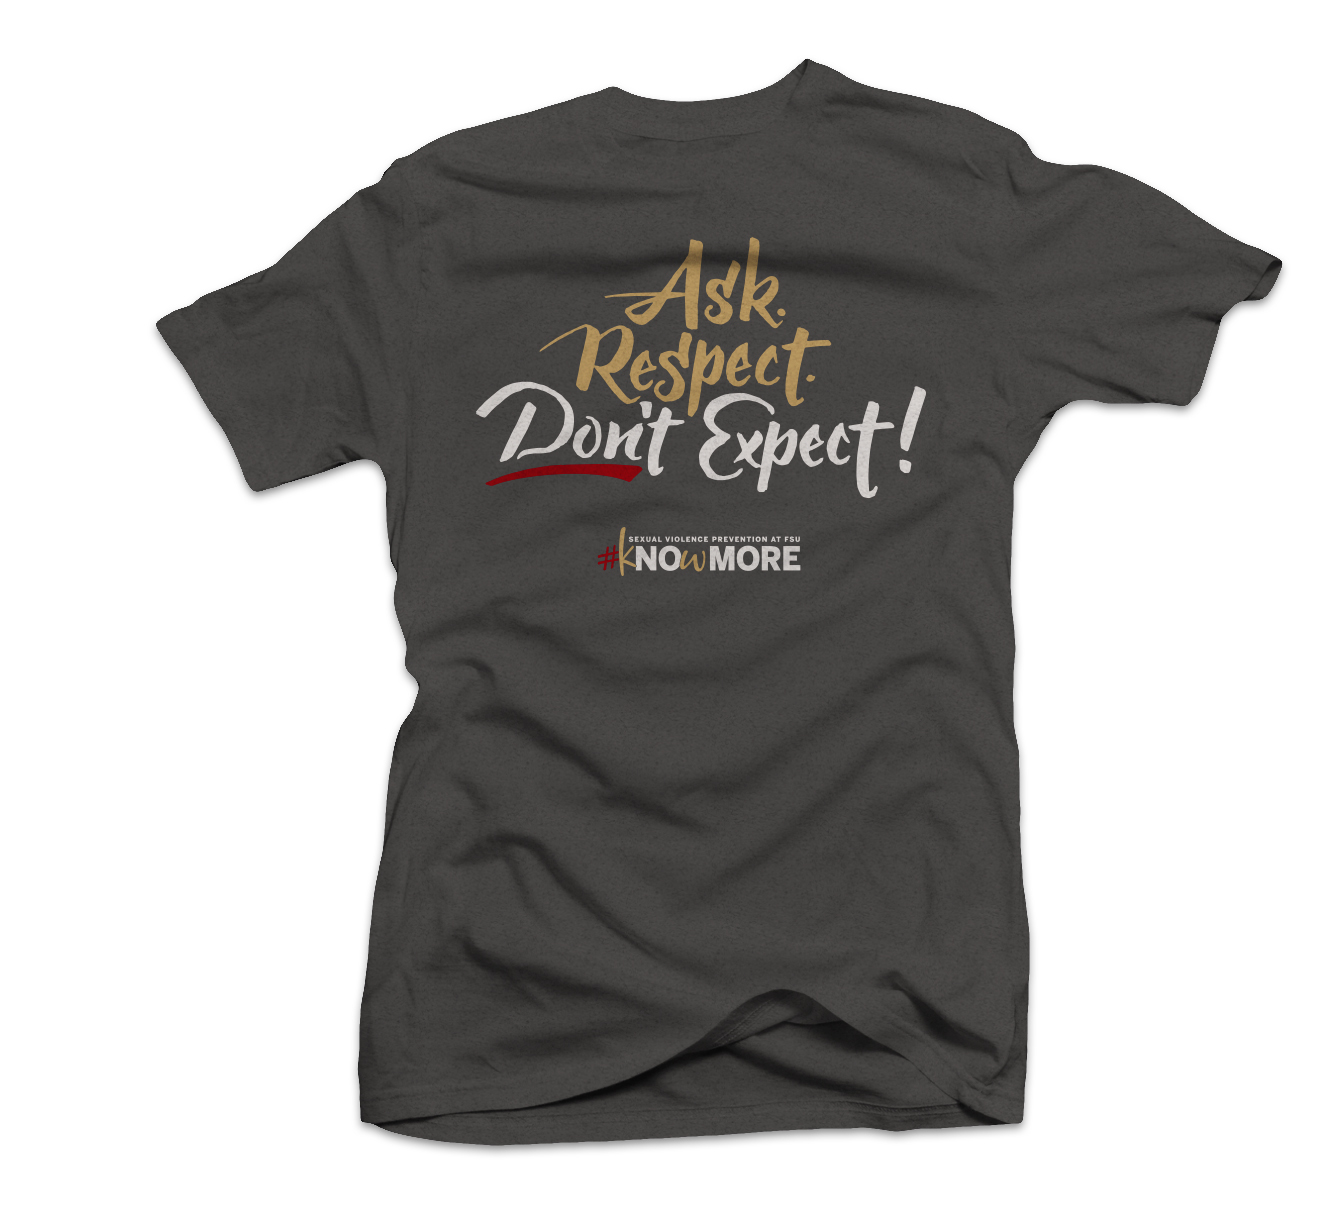 FSU Sexual Violence Prevention T-shirt